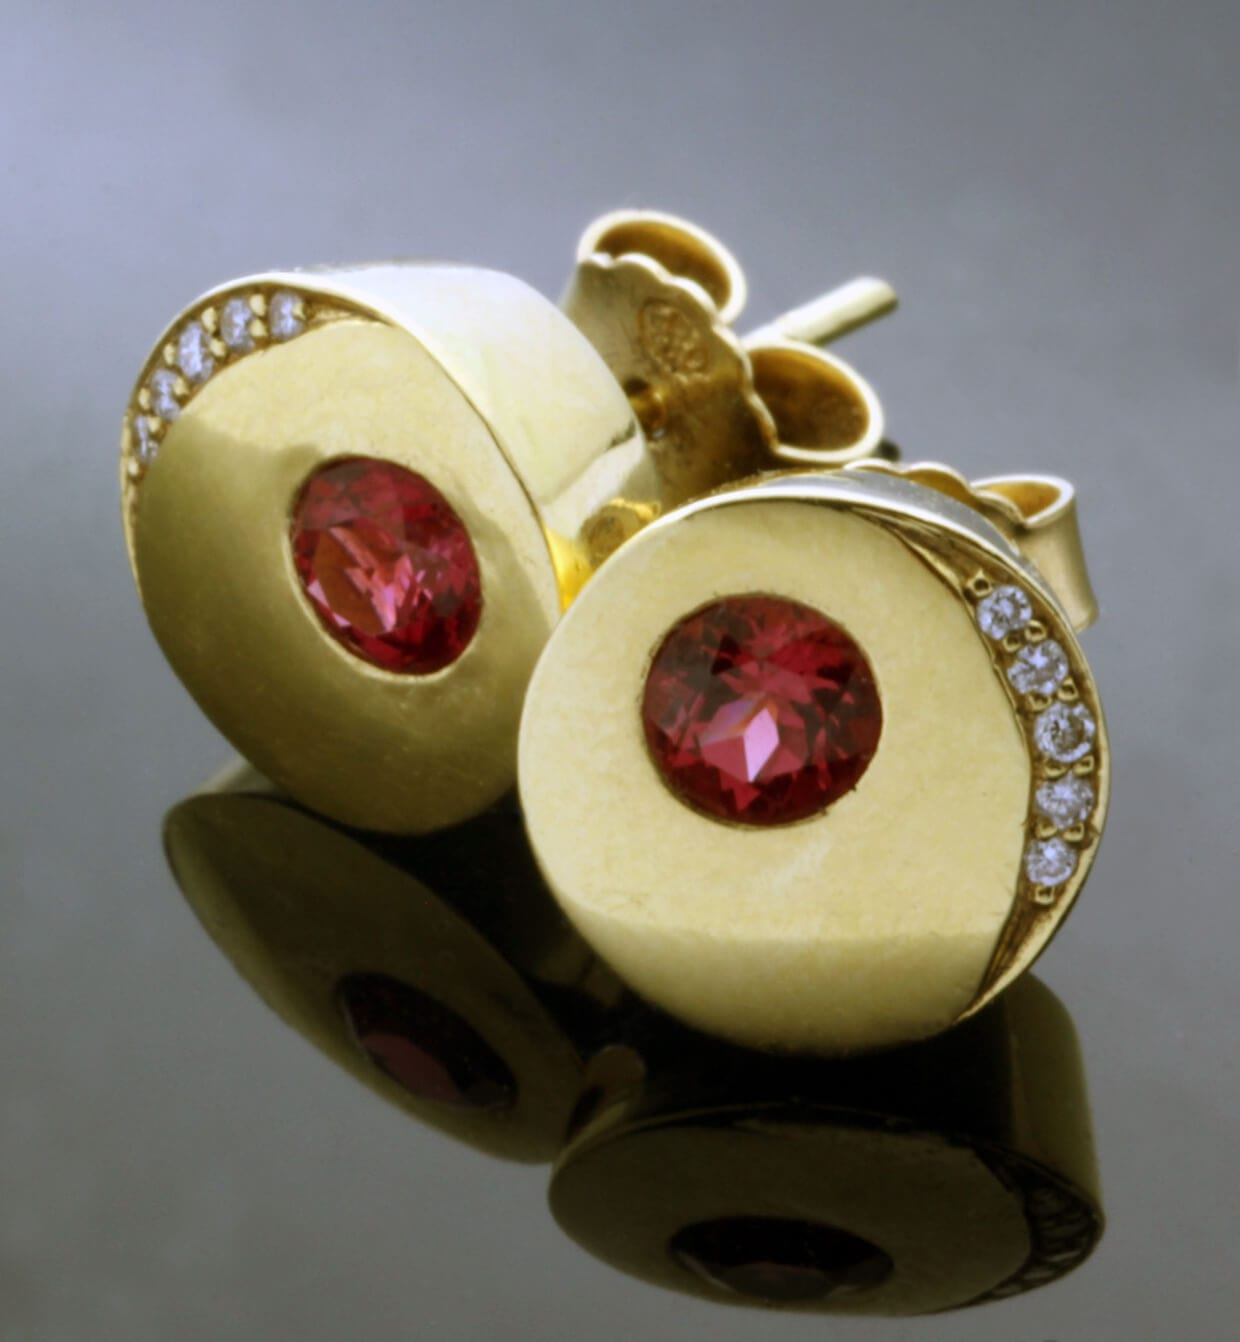 Handmade modern stud earrings Yellow Gold Red Spinel and Diamond gemstones